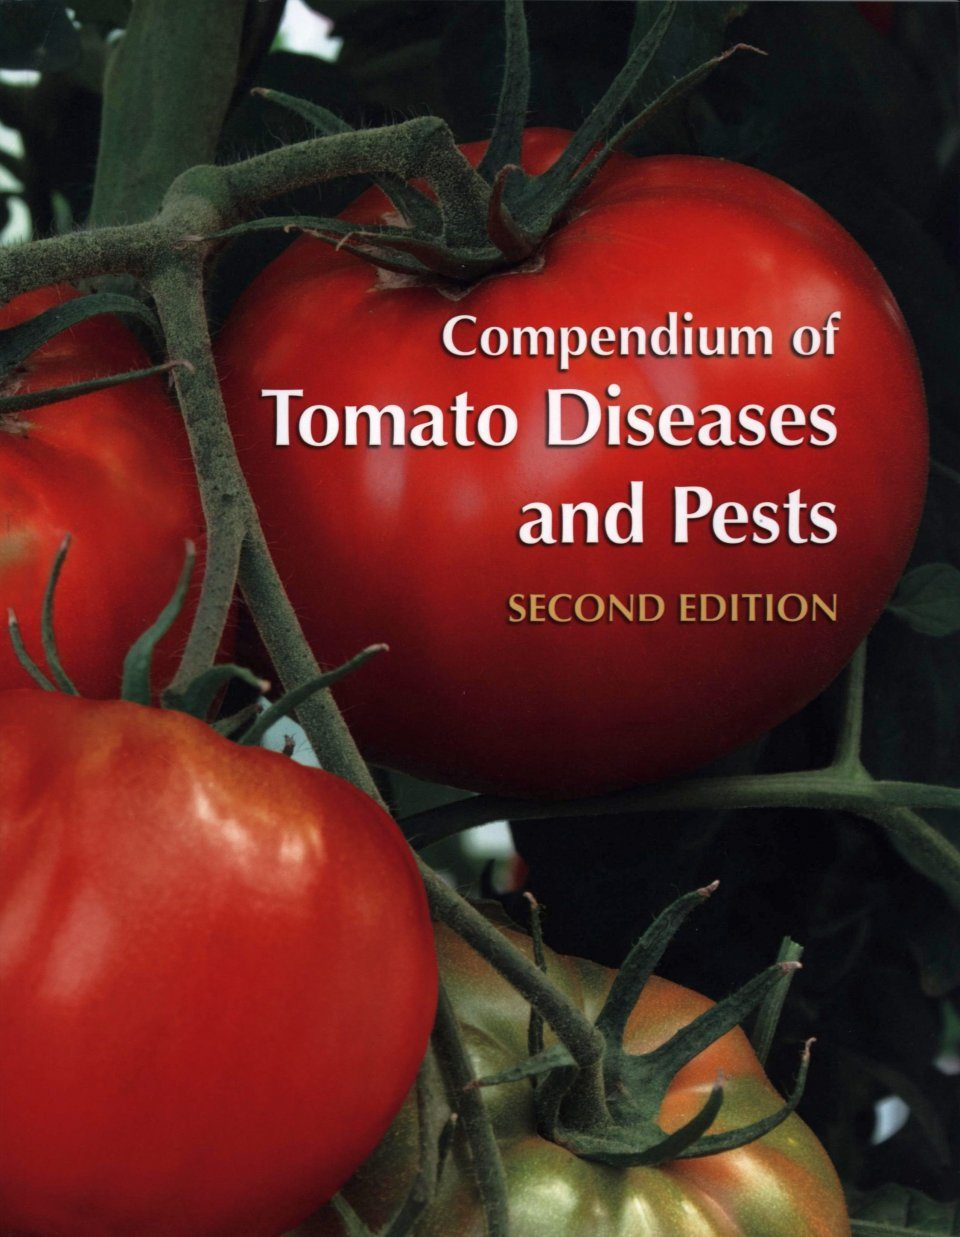 Compendium of Tomato Diseases and Pests